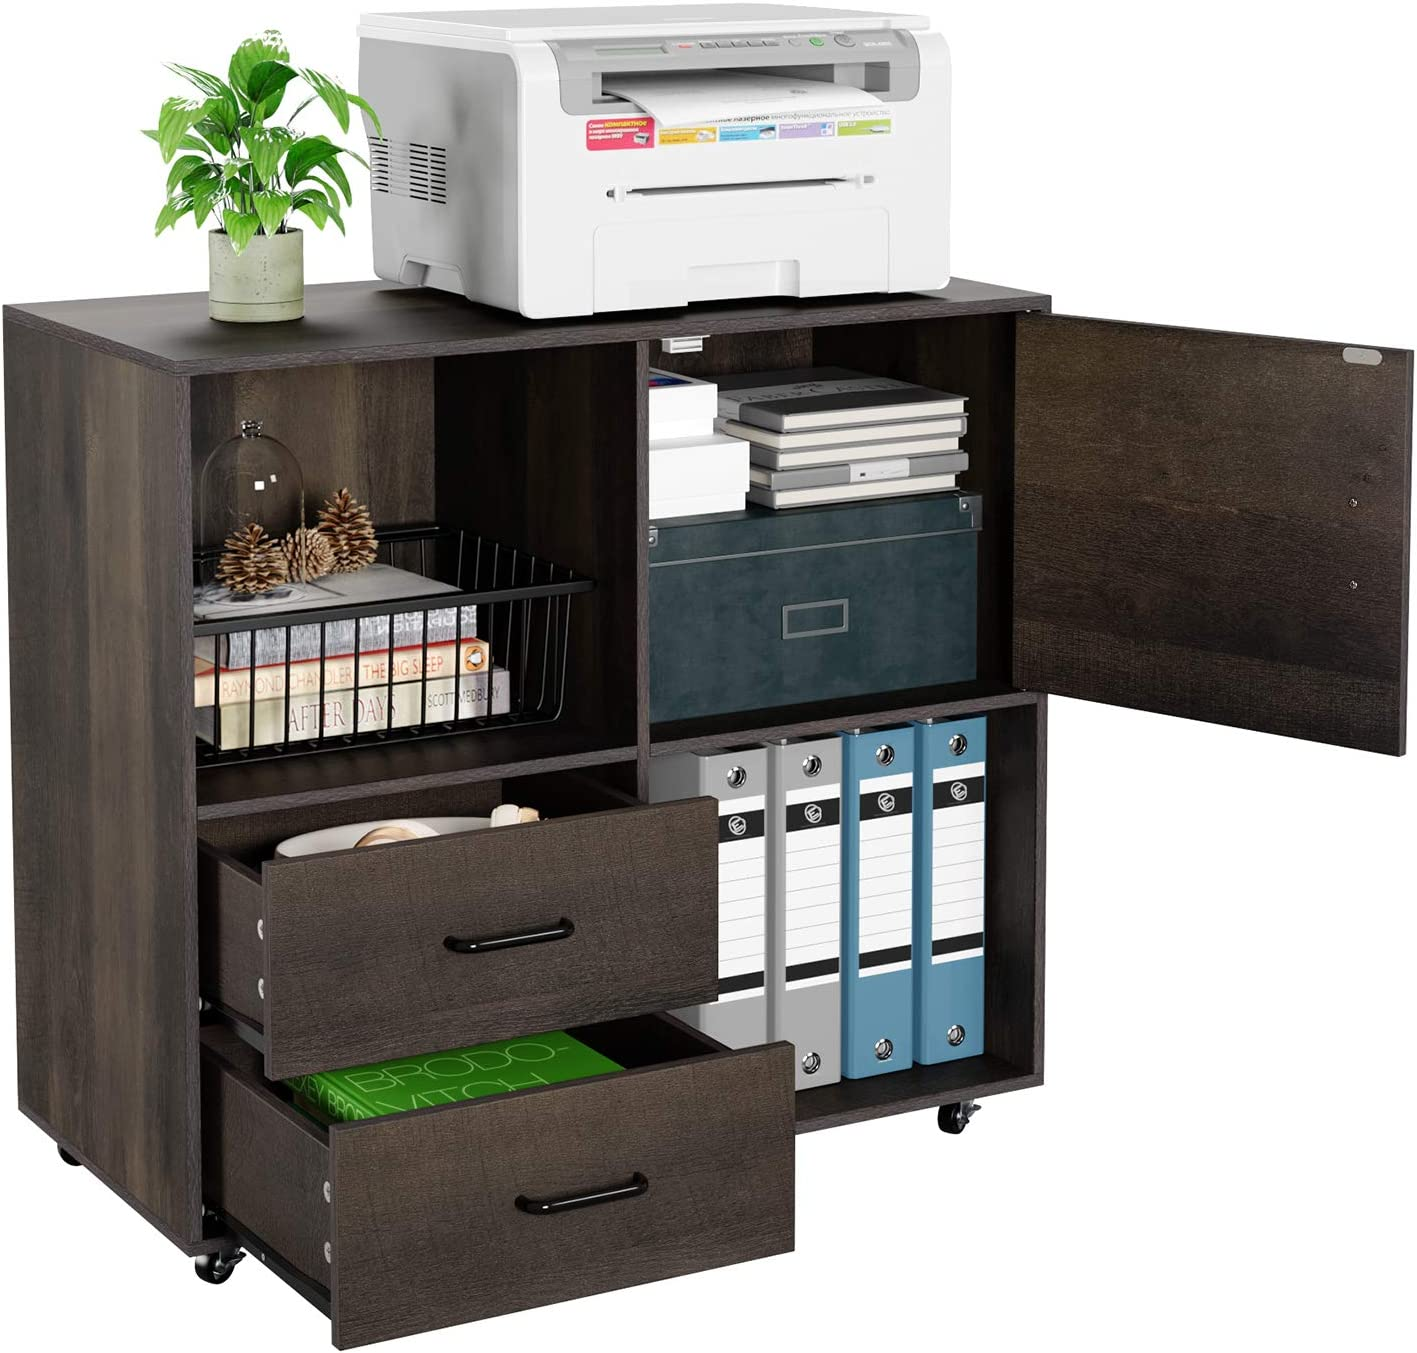 HOMECHO File Cabinet Mobile Lateral Filing Cabinet with Wheels, Large Modern Printer Stand with 2 Drawers and Open Shelves, Functional Storage Cabinet for Home Office, Dark Brown